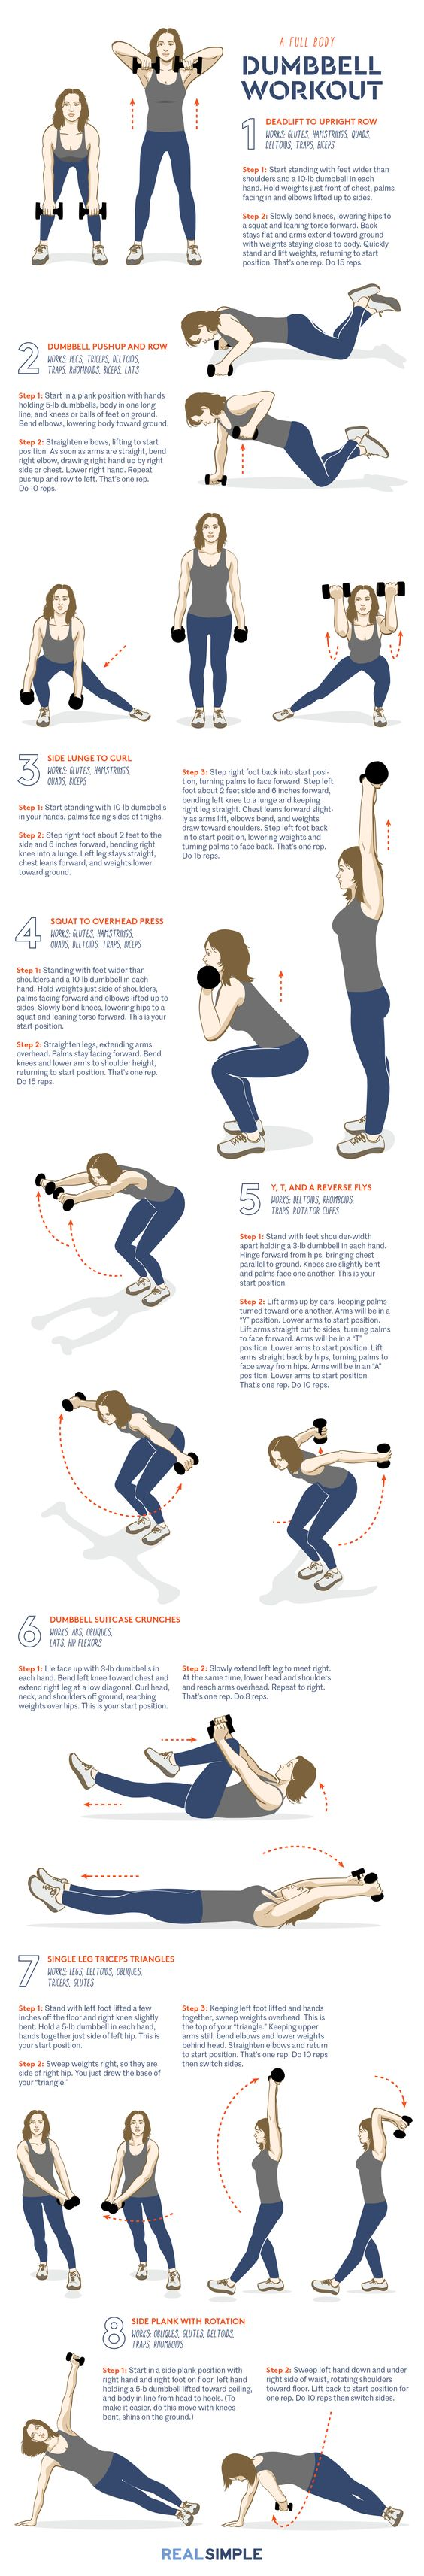 9 best Yoga images on Pinterest | Exercise, Gym and Physical exercise